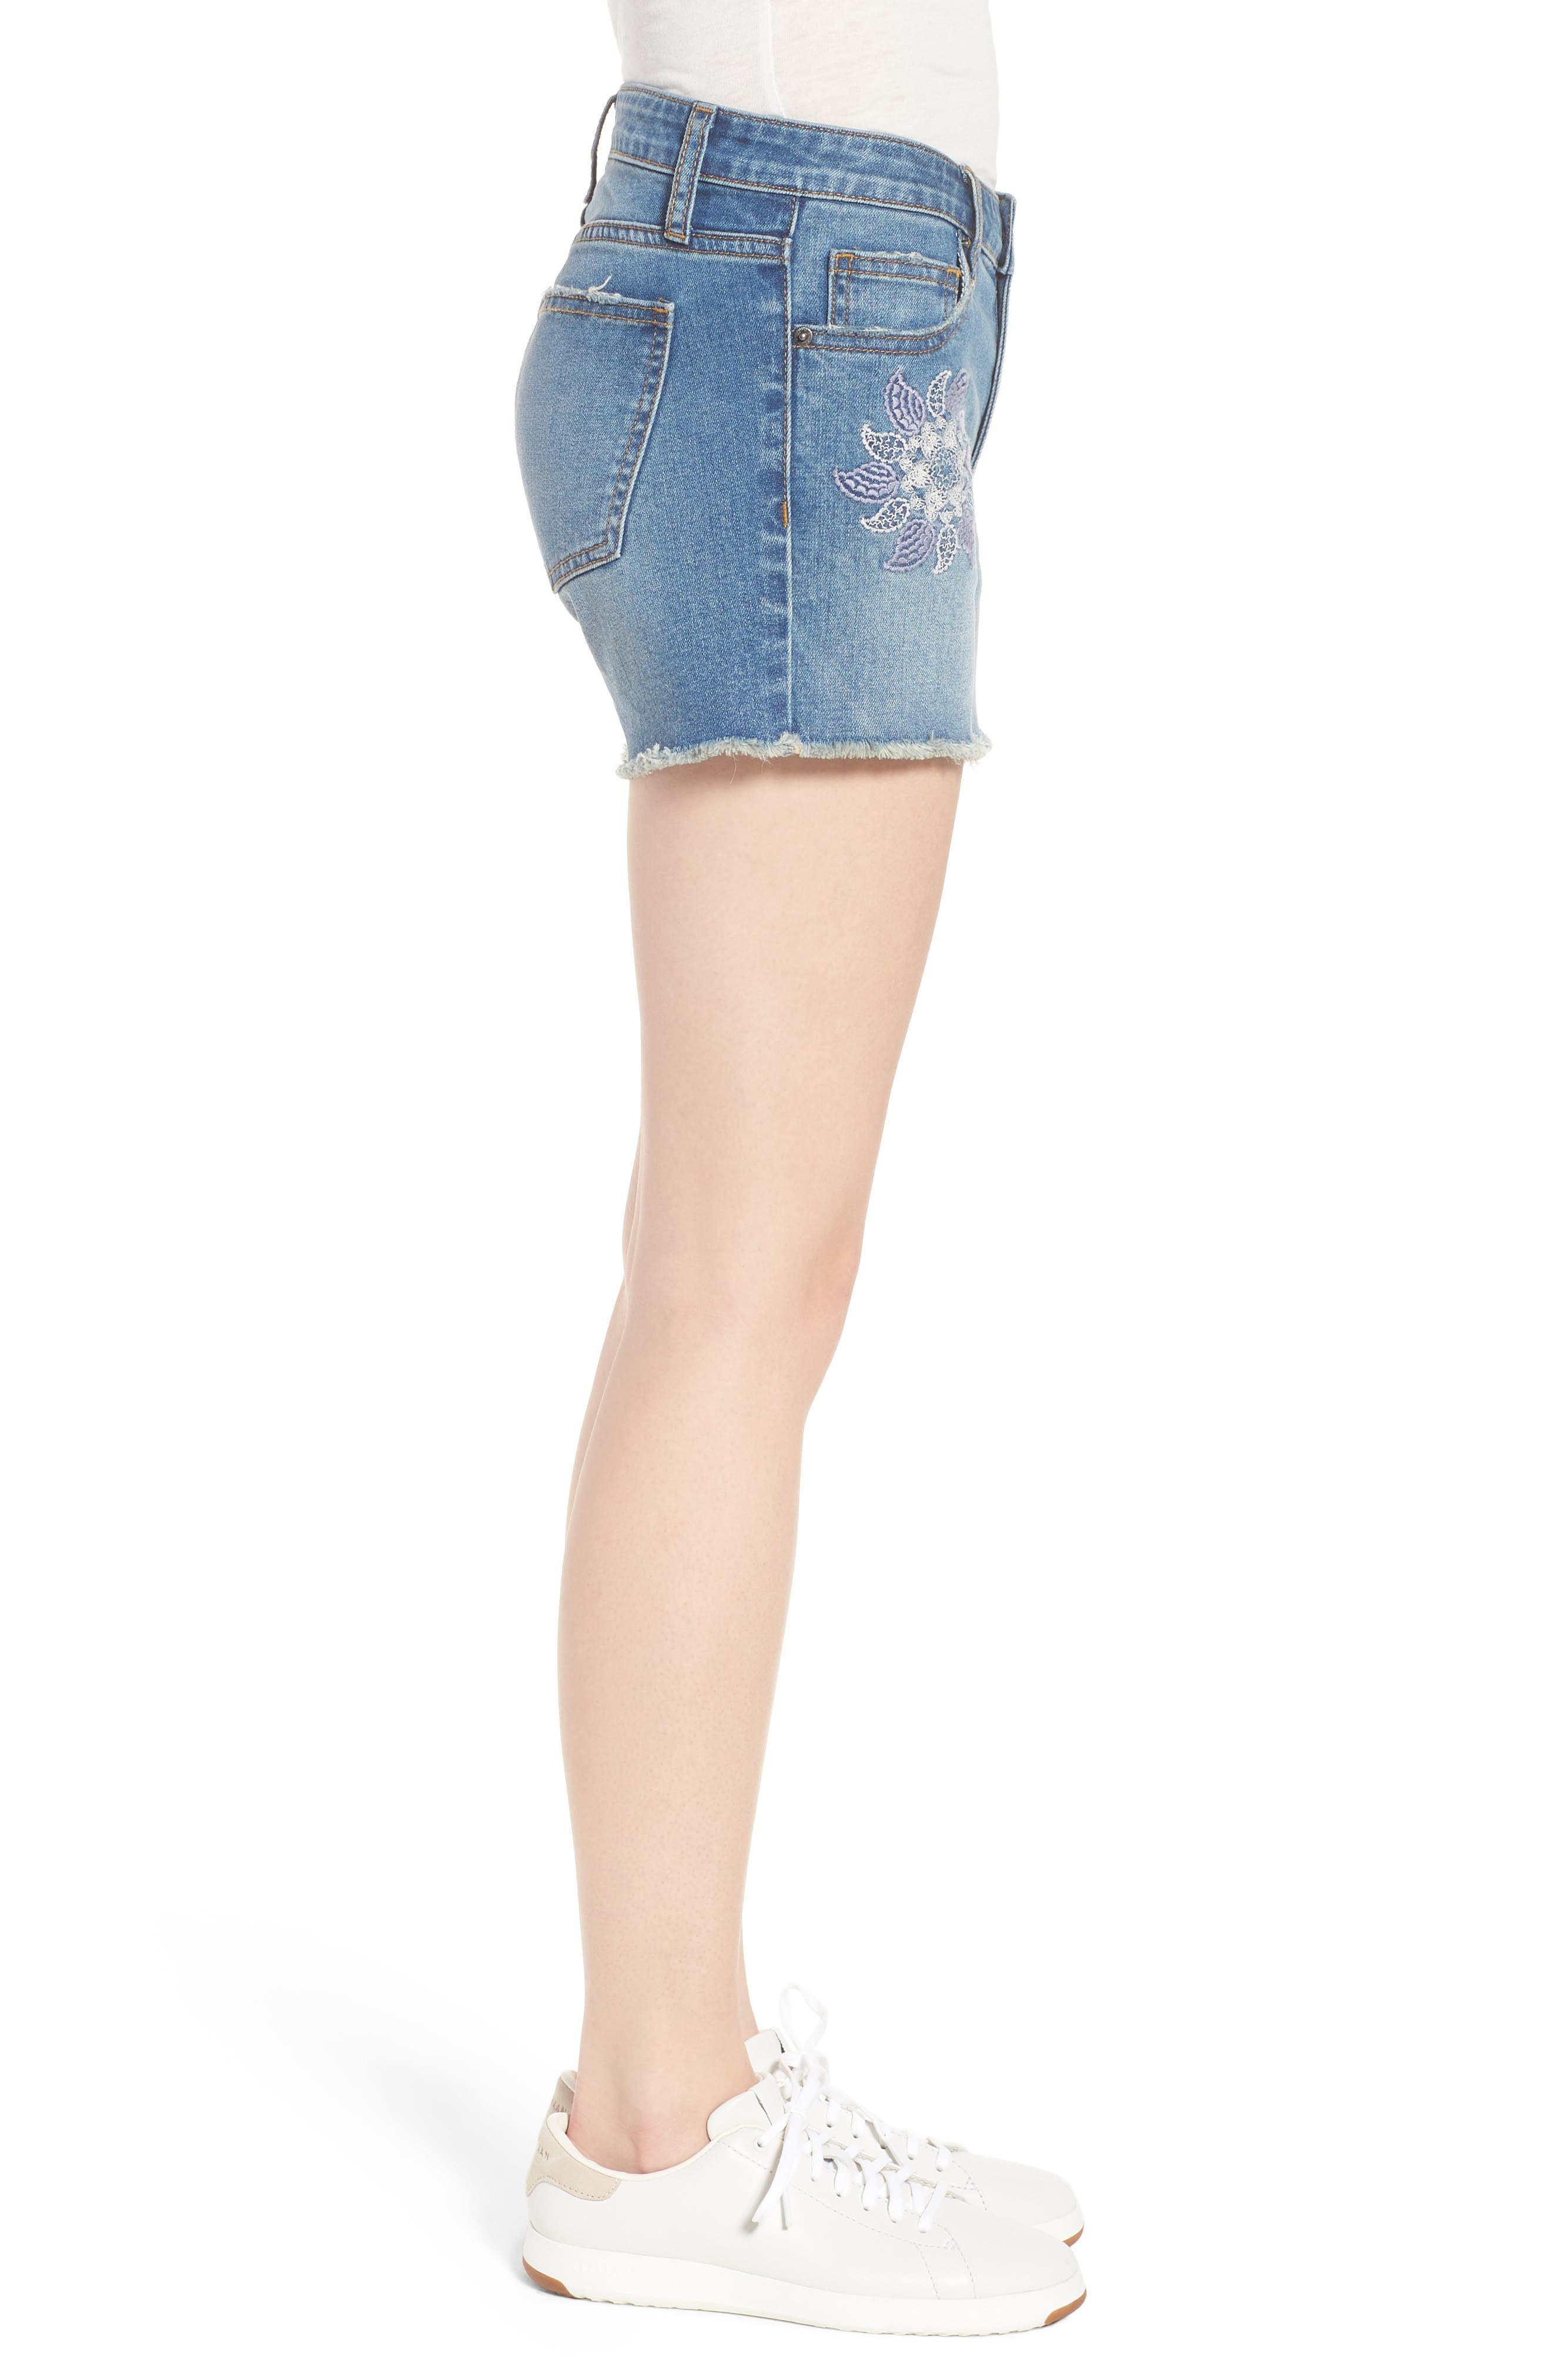 Embroidered Denim Shorts,                             Alternate thumbnail 3, color,                             Blue W/ Embroider